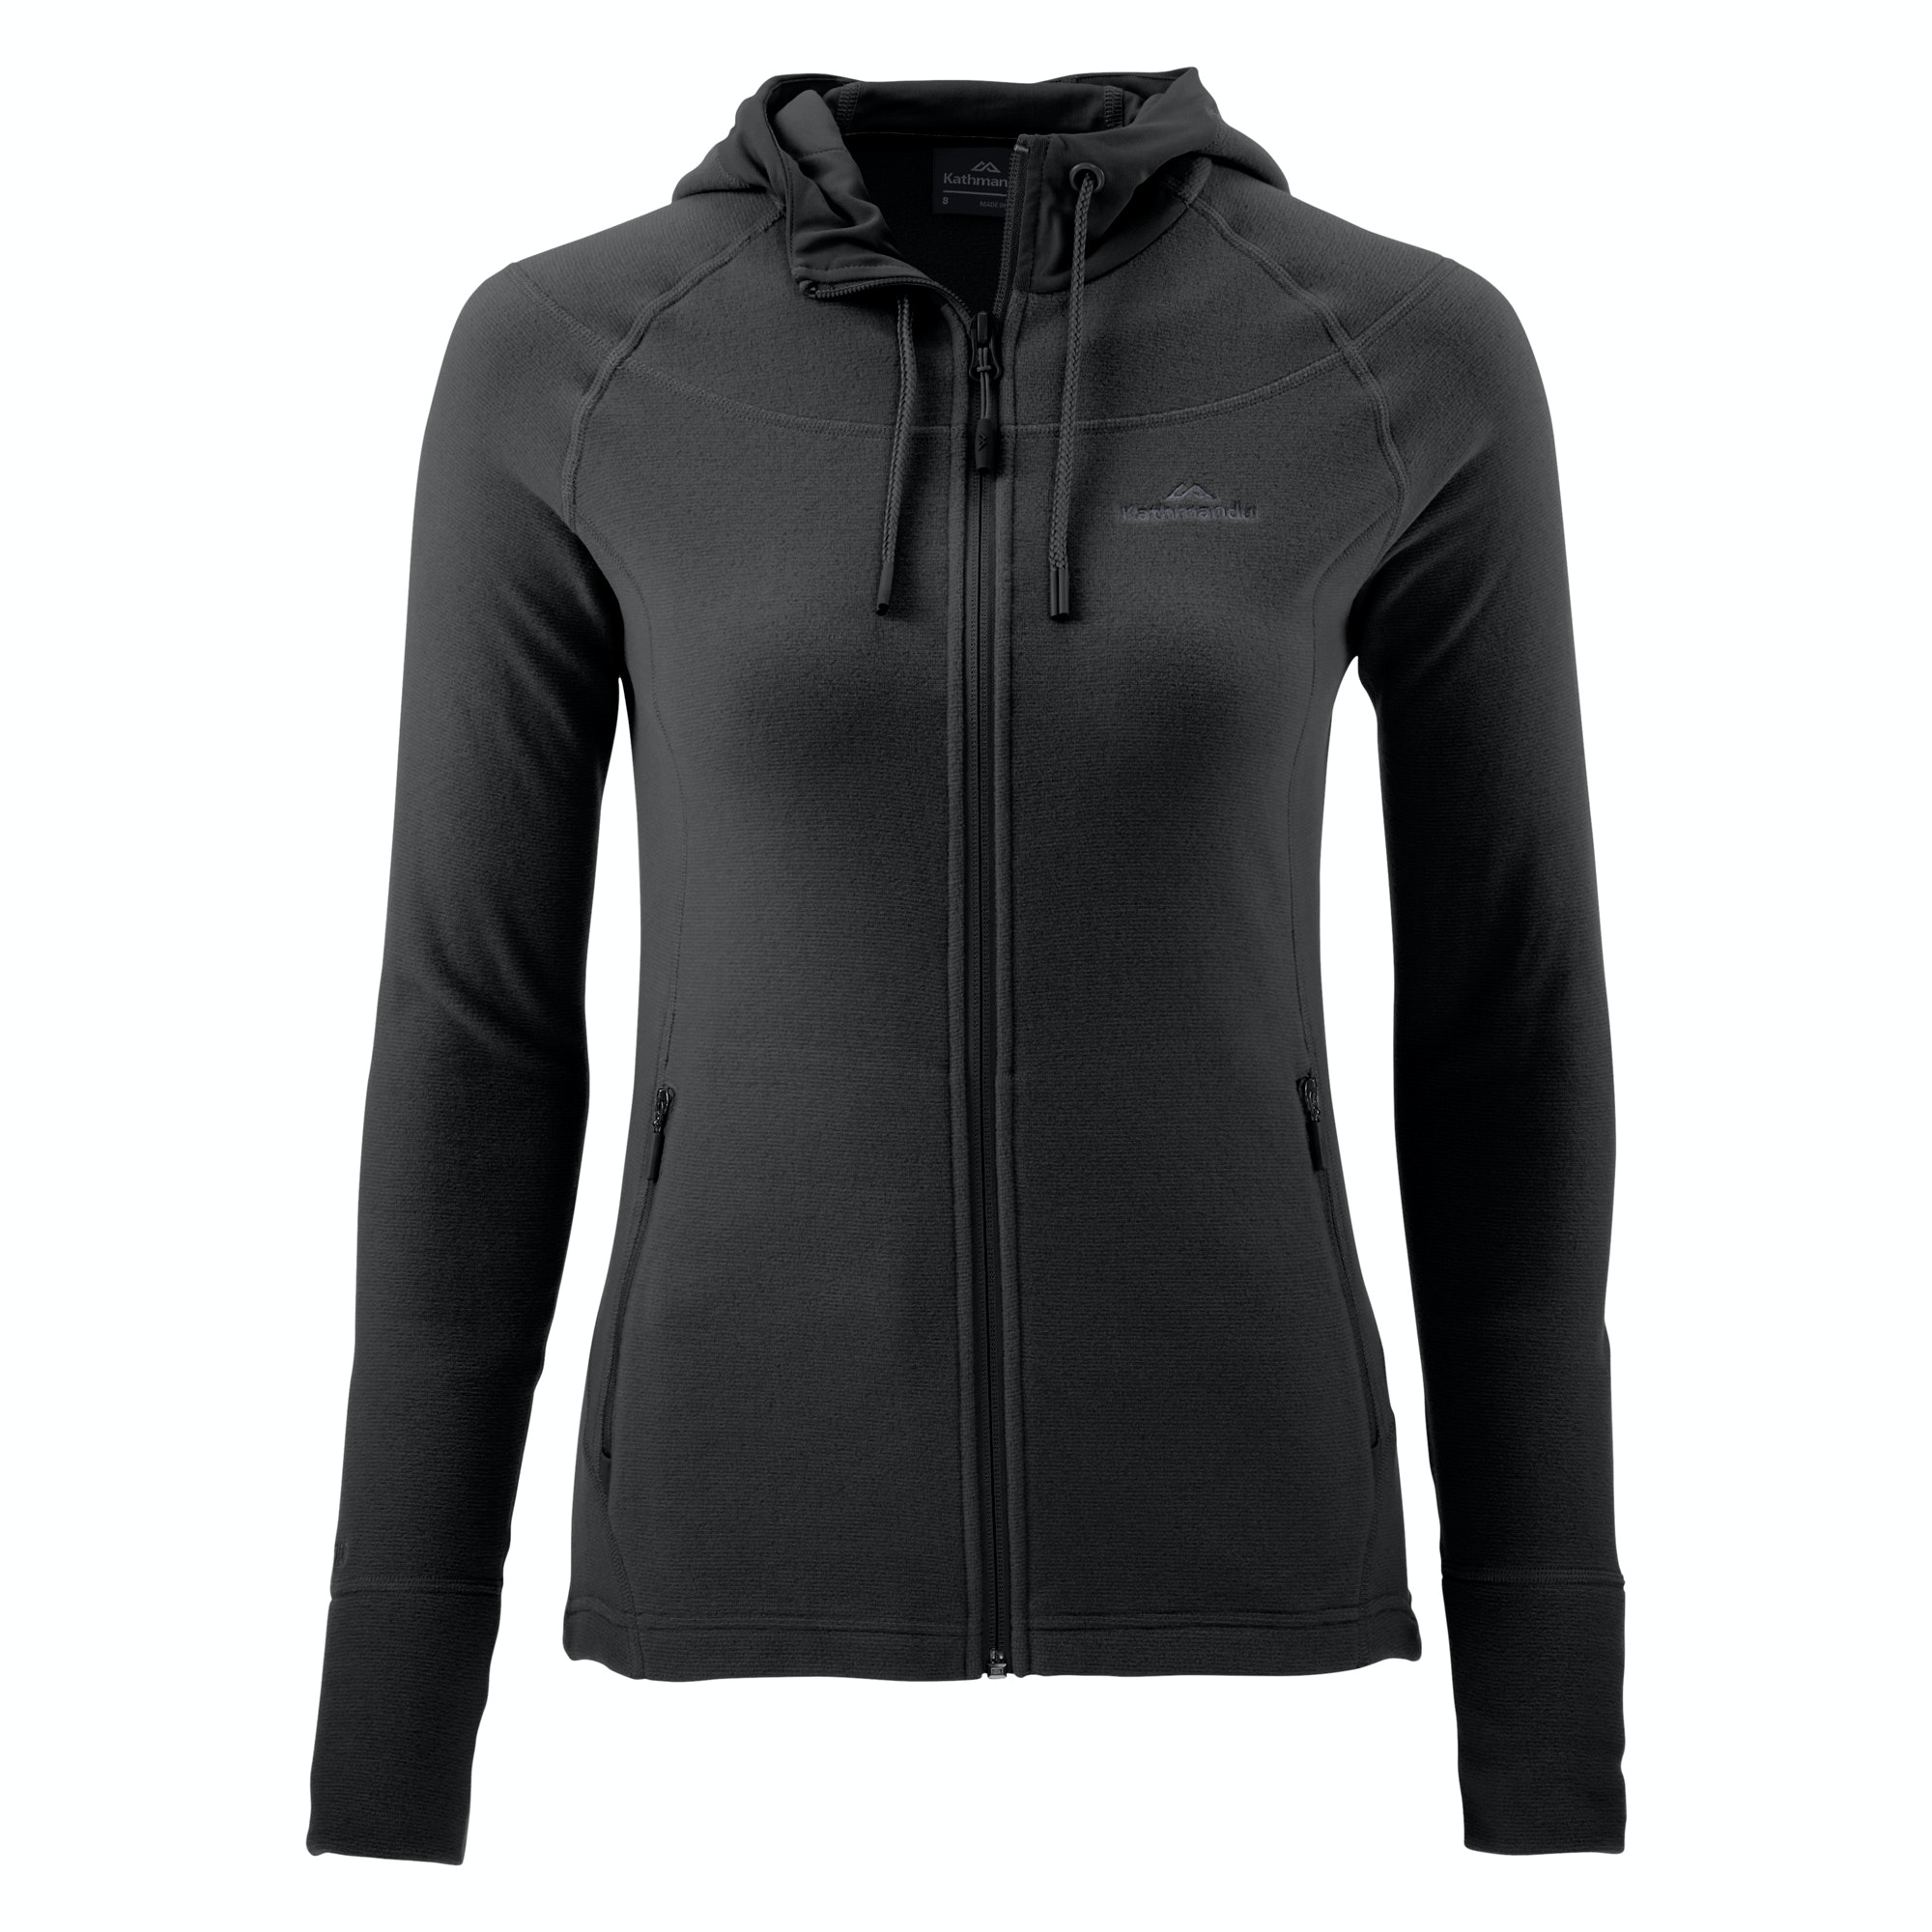 Pro HyperWarm Hooded Women's Training Hoodie | Fall Clothes